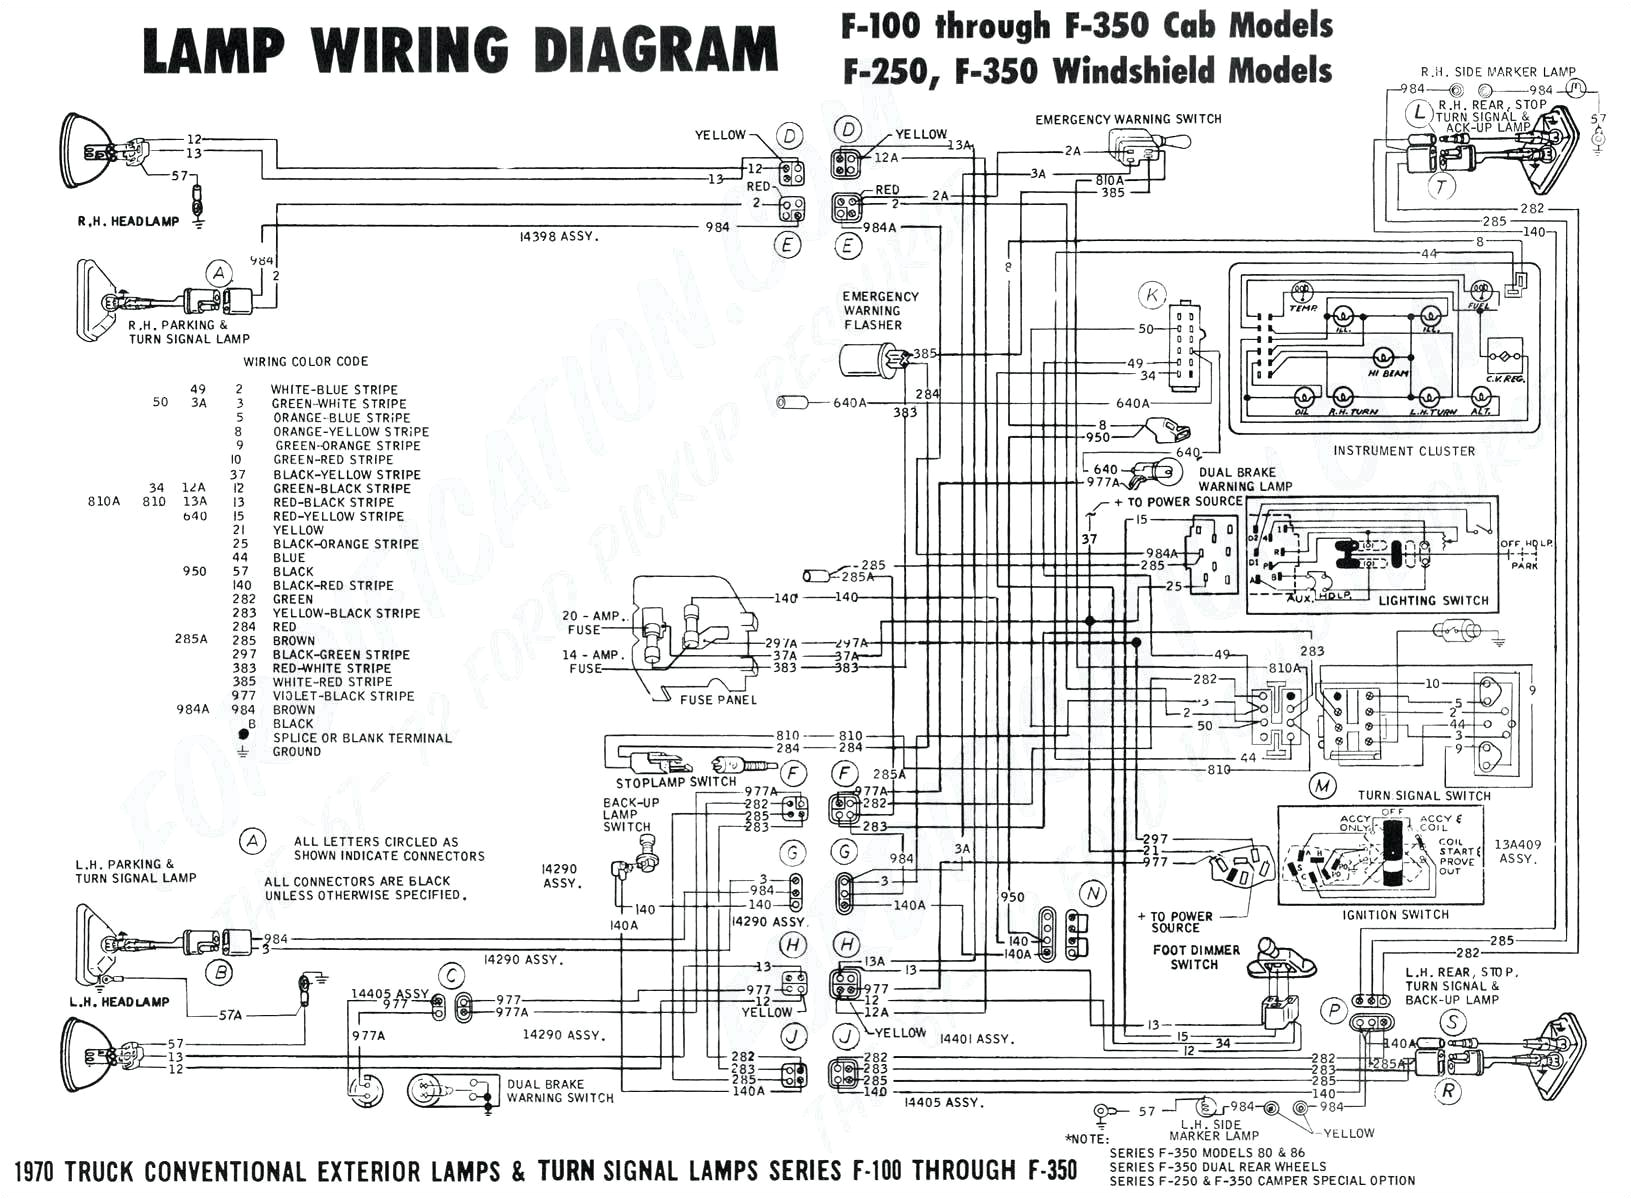 2014 Autocar Wiring Diagram. mgb wiring diagram. 2014 jeep grand cherokee wiring  diagram autocardesign. mga alternator and negative earth conversion. i  converted a 1997 volvo autocar that had a d12 in it.A.2002-acura-tl-radio.info. All Rights Reserved.